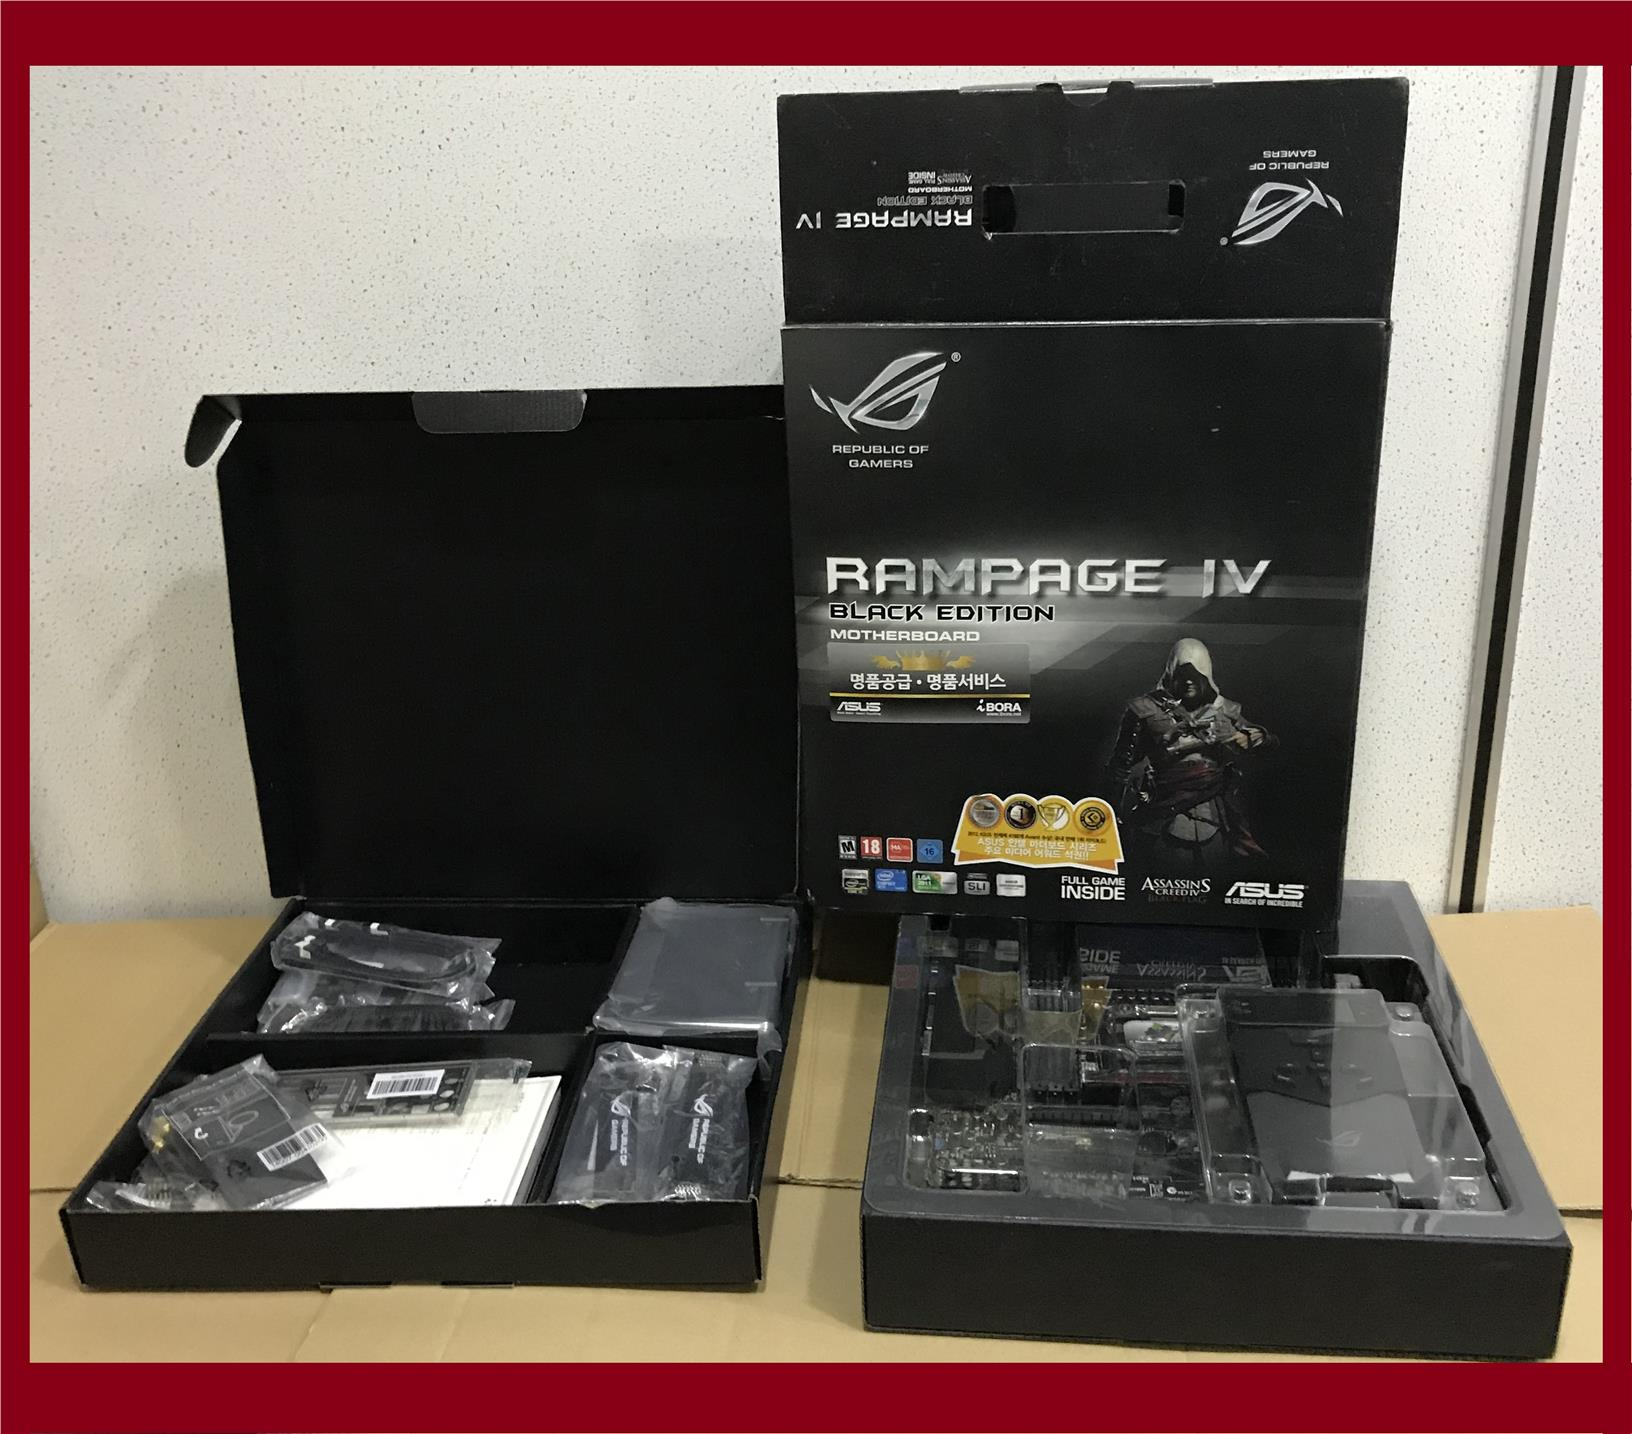 Rampage iv black edition | motherboards | asus usa.